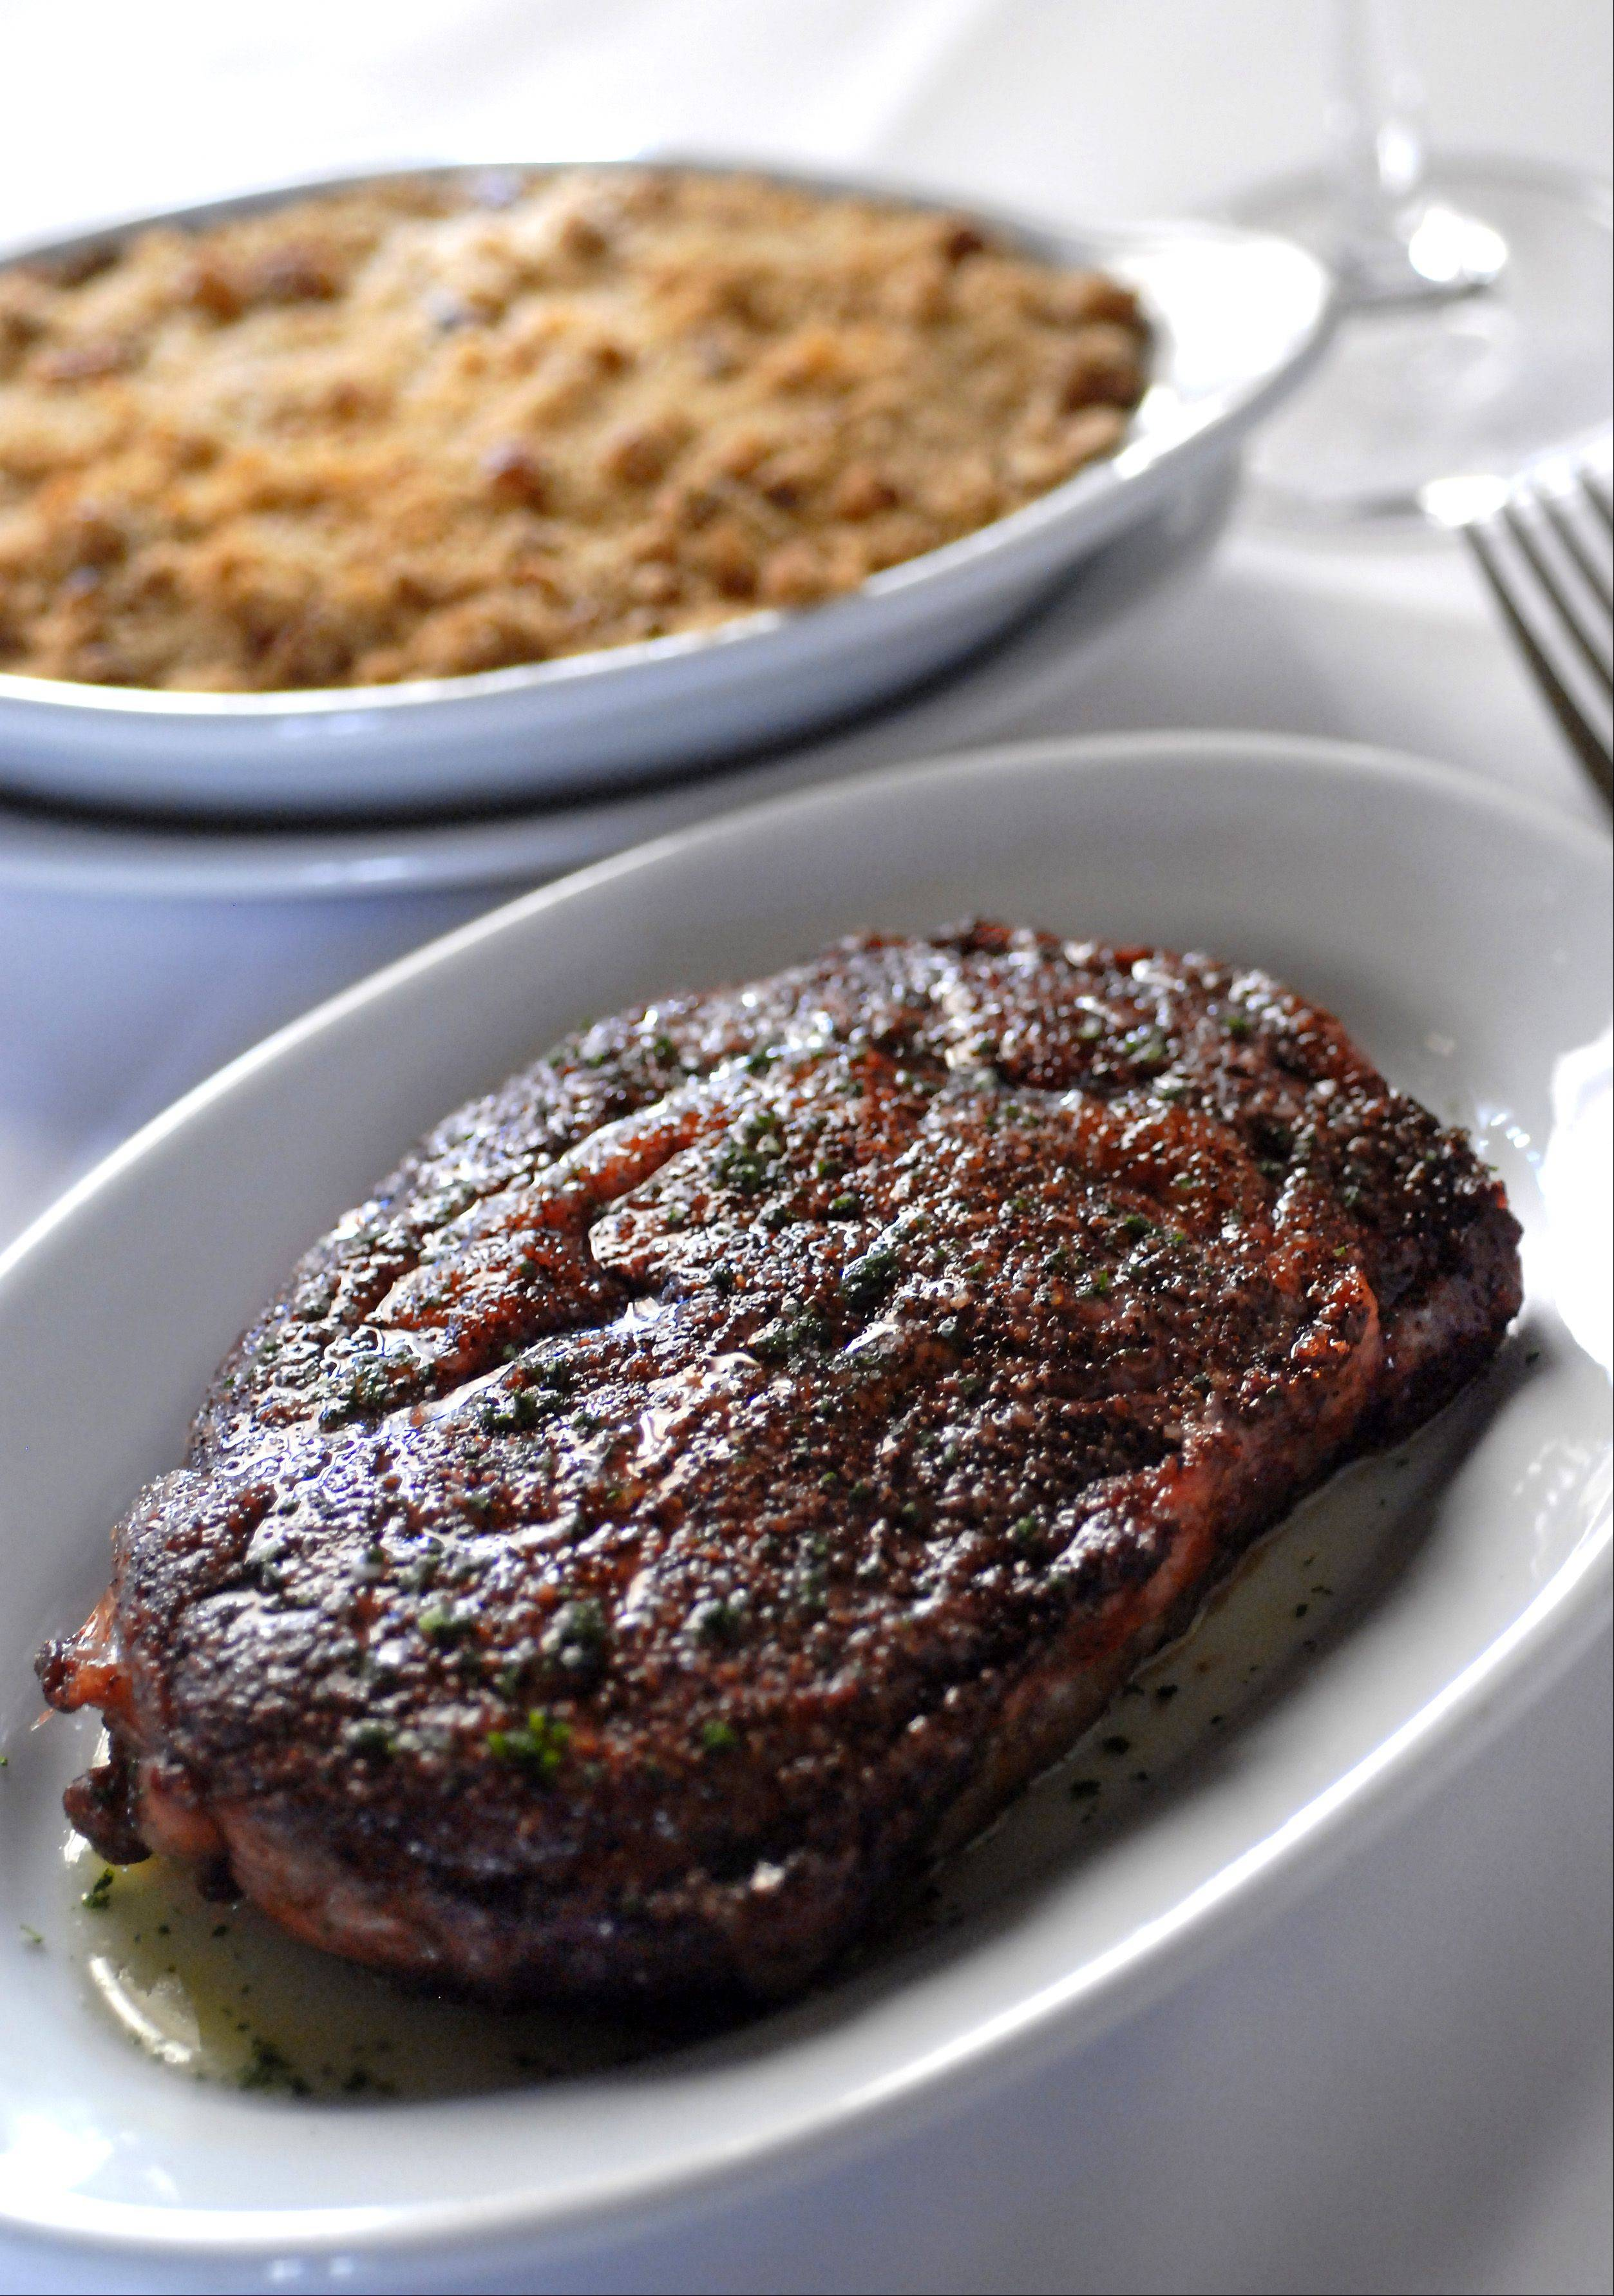 Aged rib-eyes helped earn Ruth's Chris Steak House a mention on Yahoo's list of top five steakhouses in the U.S.